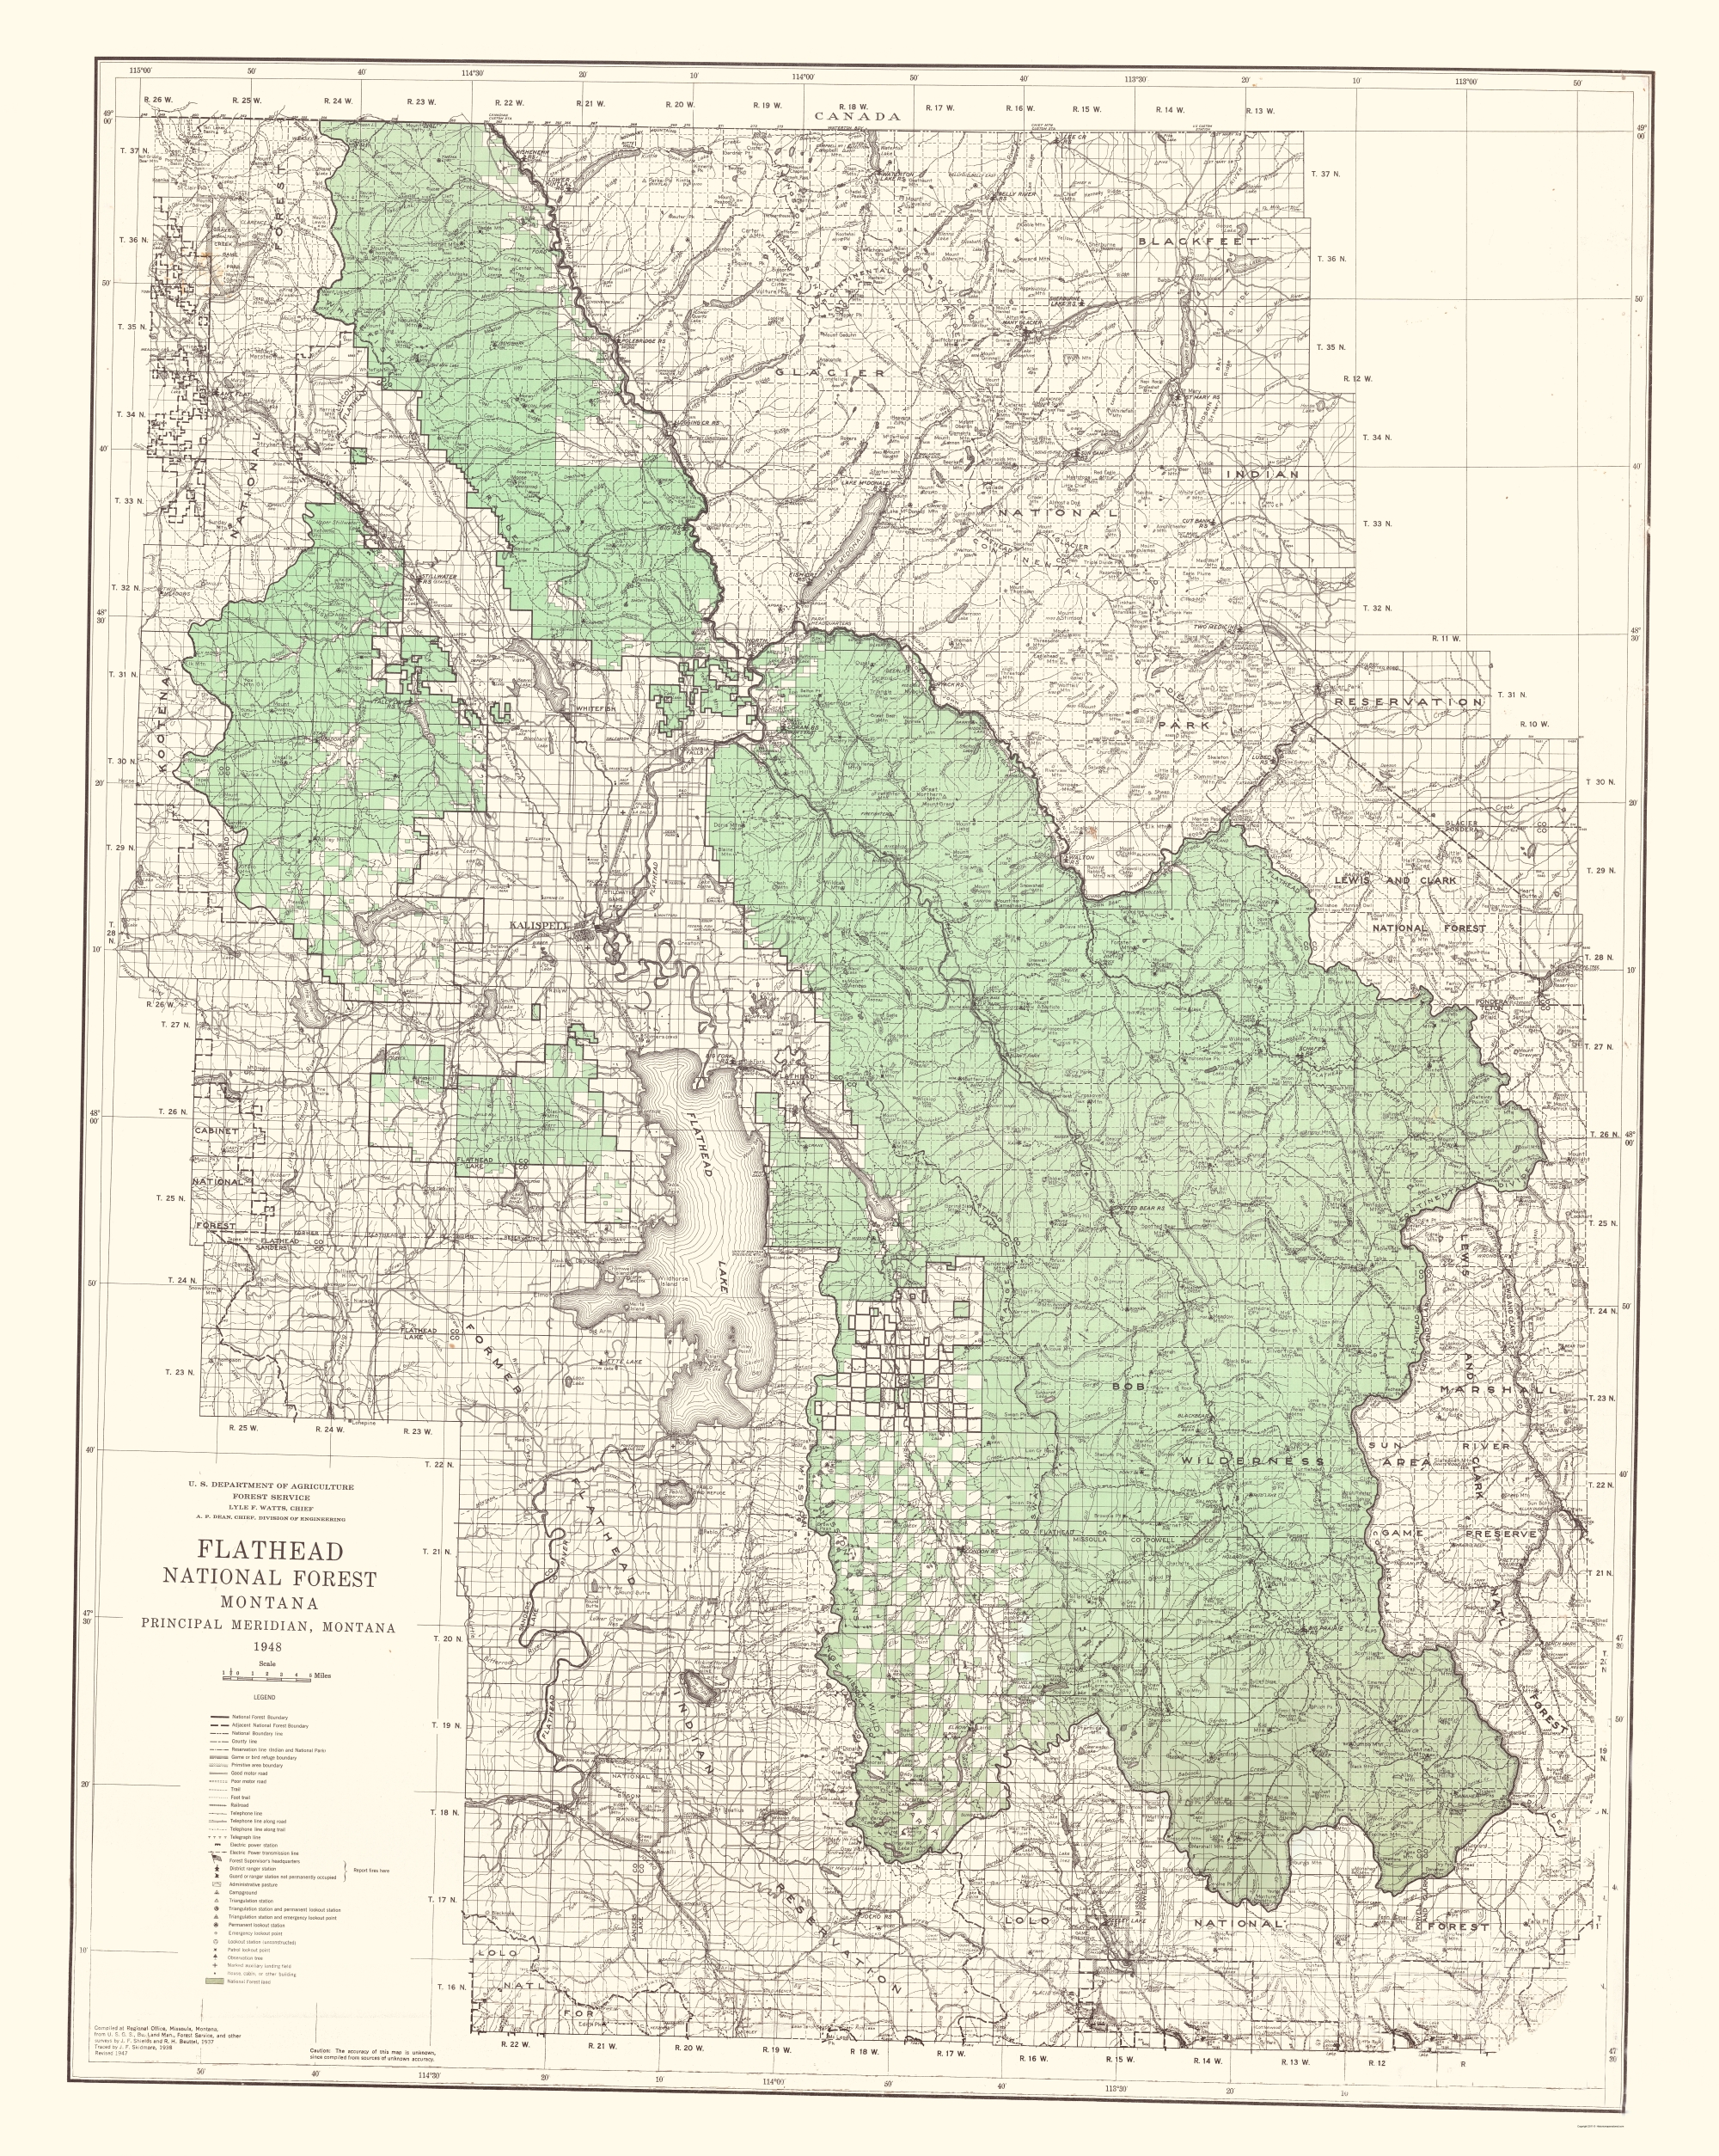 Topographical Map Flathead National Forest Montana - Us map of forest types